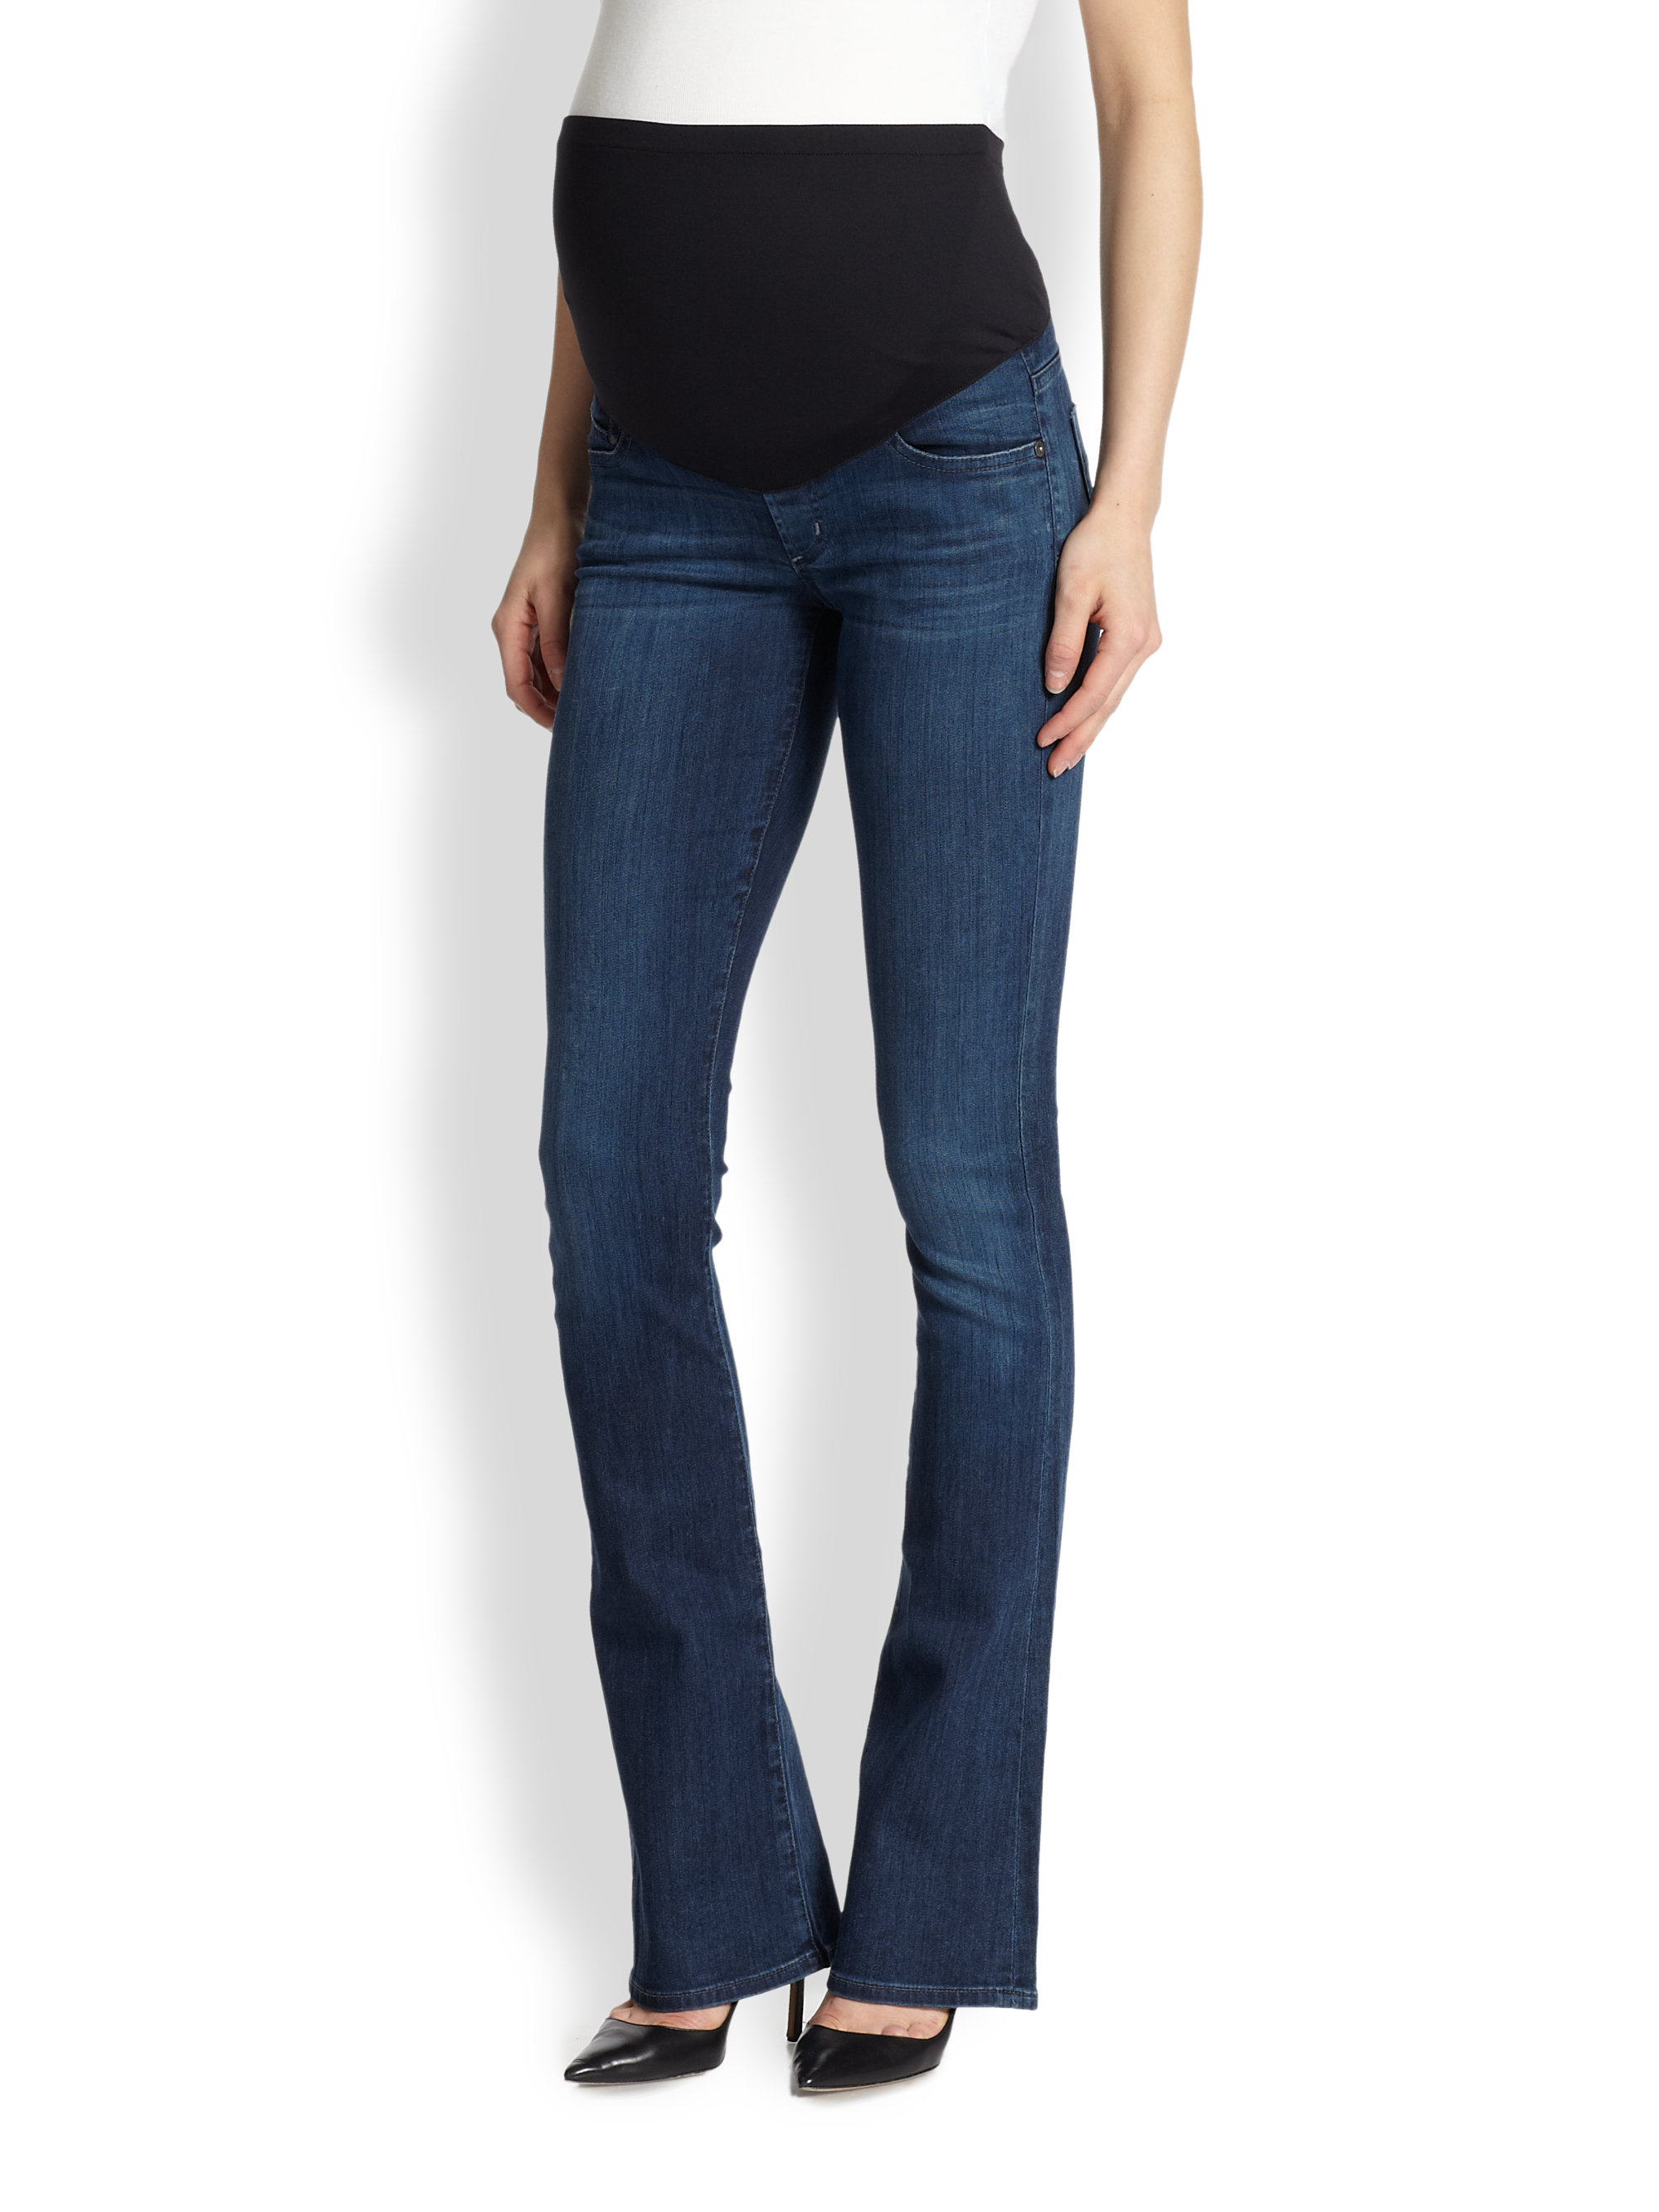 Skinny bootcut maternity jeans